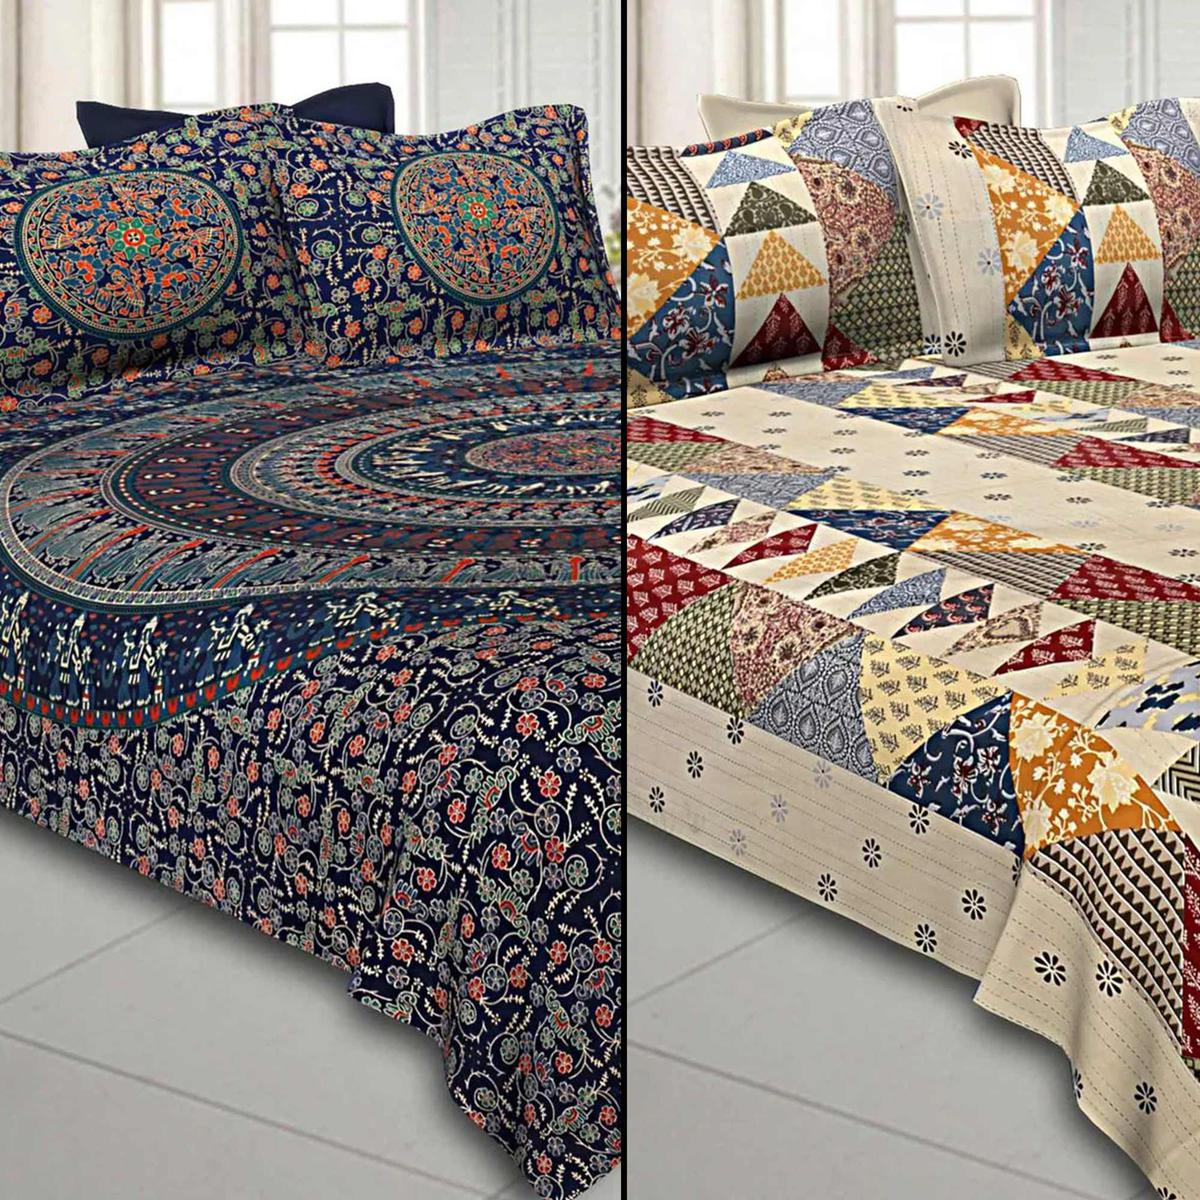 Unique Printed Pure Cotton Double Bedsheet With Pillow Cover Set - Pack of 2